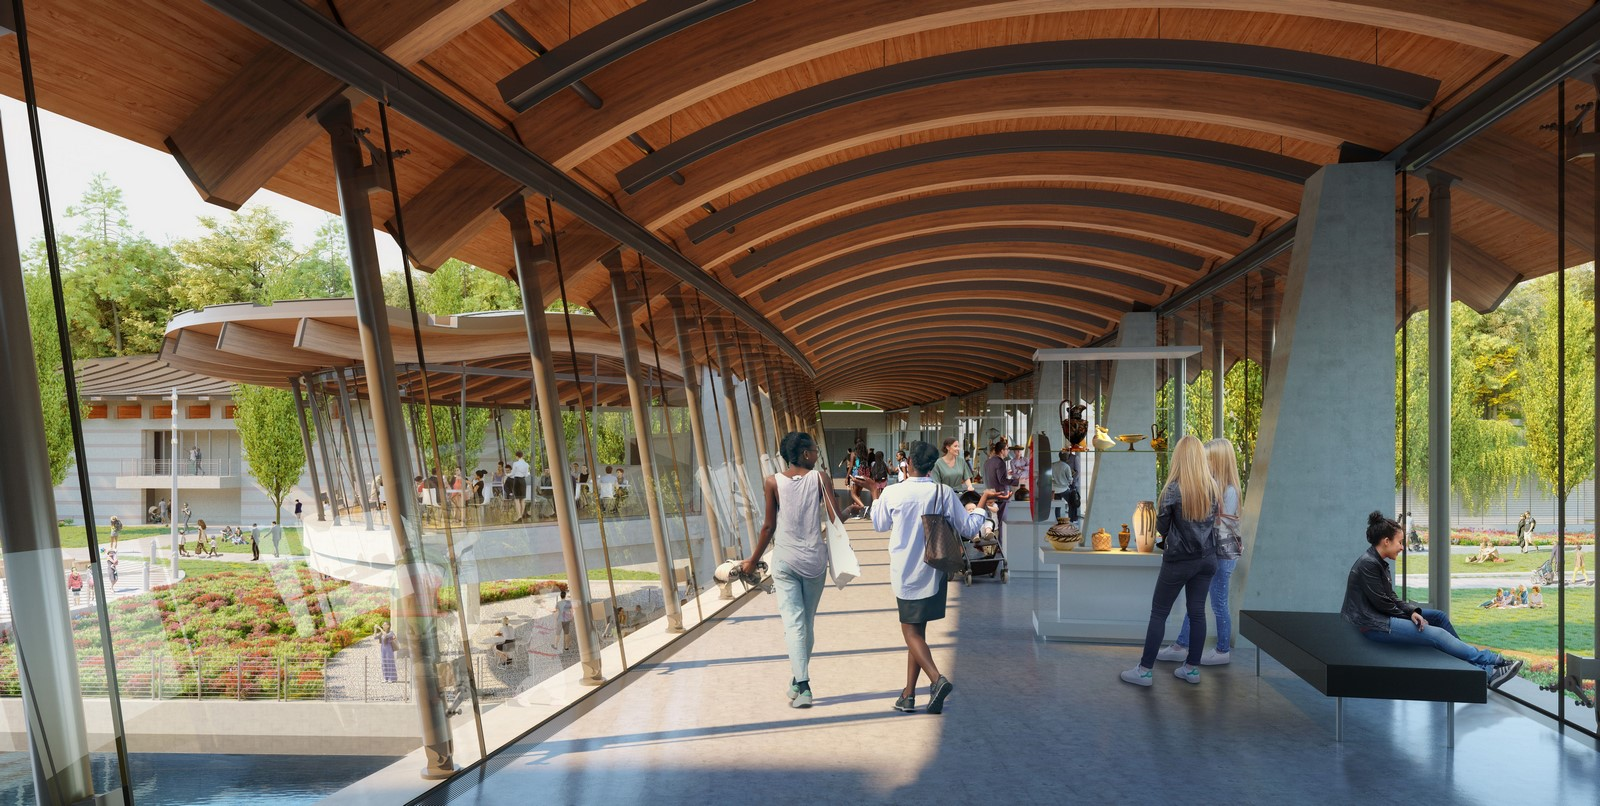 Crystal Bridges Museum Of American Art In Bentonville expansion plans revealed by Safdie Architects - Sheet11